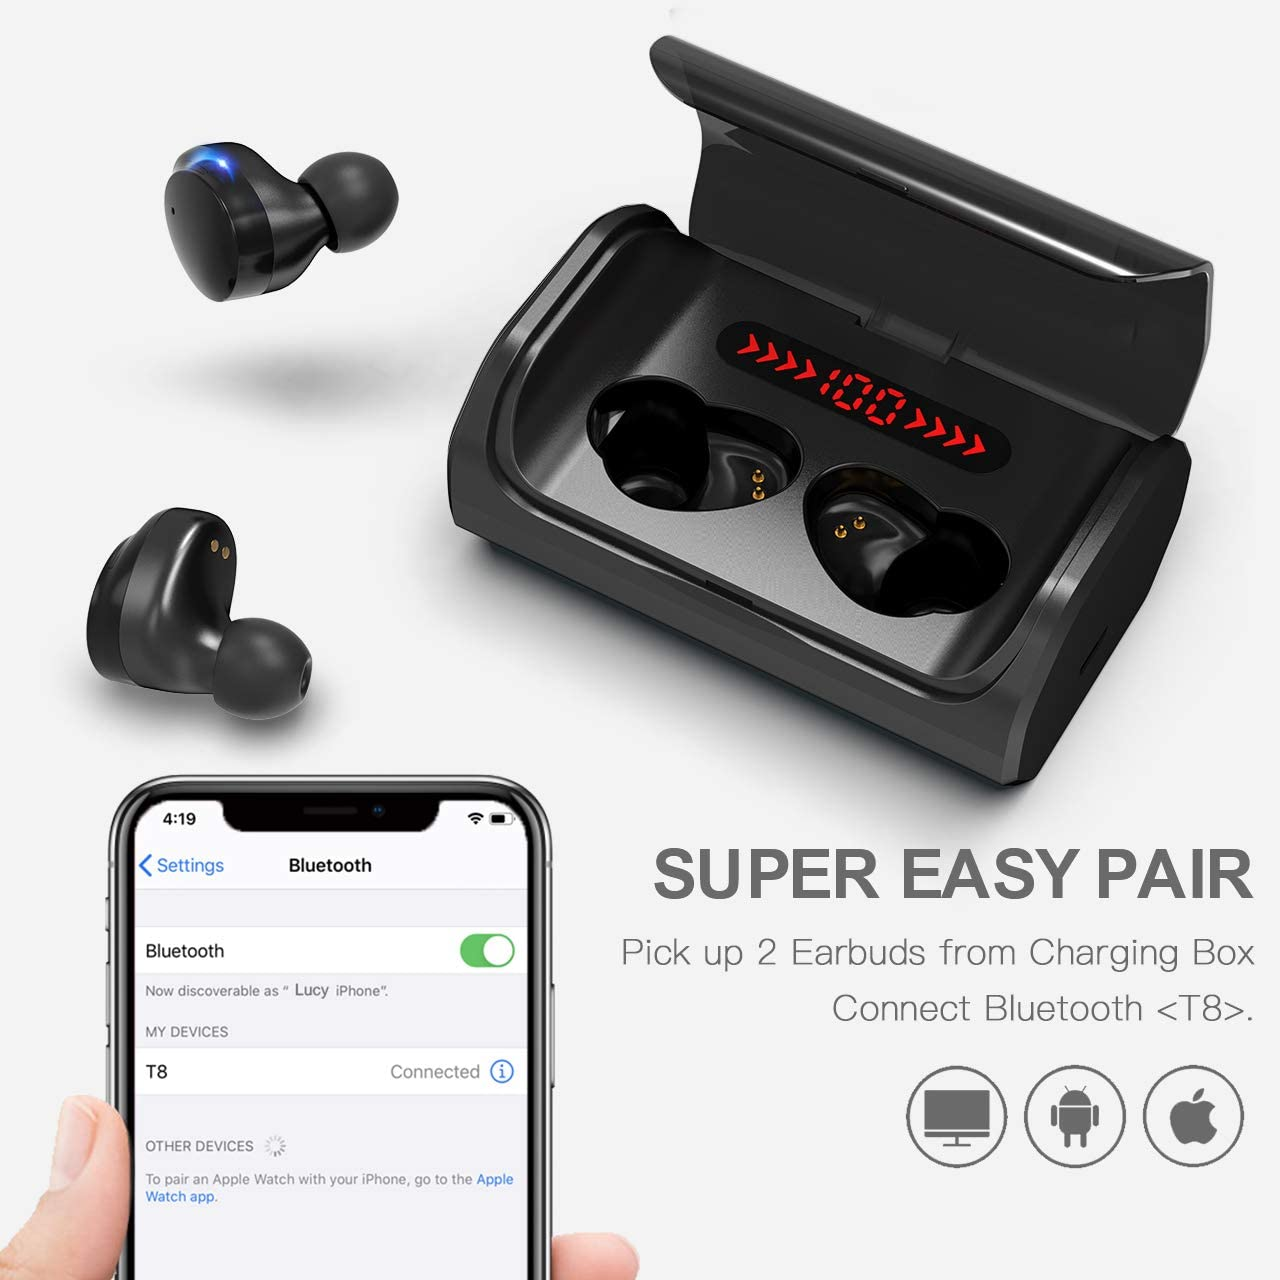 【Latest Model】Wireless Earbuds Headphones HD Stereo Sound Sports Headsets with Built-in Noise Canceling Mic for iPhone Android AIKELA Bluetooth 5.0 Headphones in Ear Auto Pairing Wireless Earphones